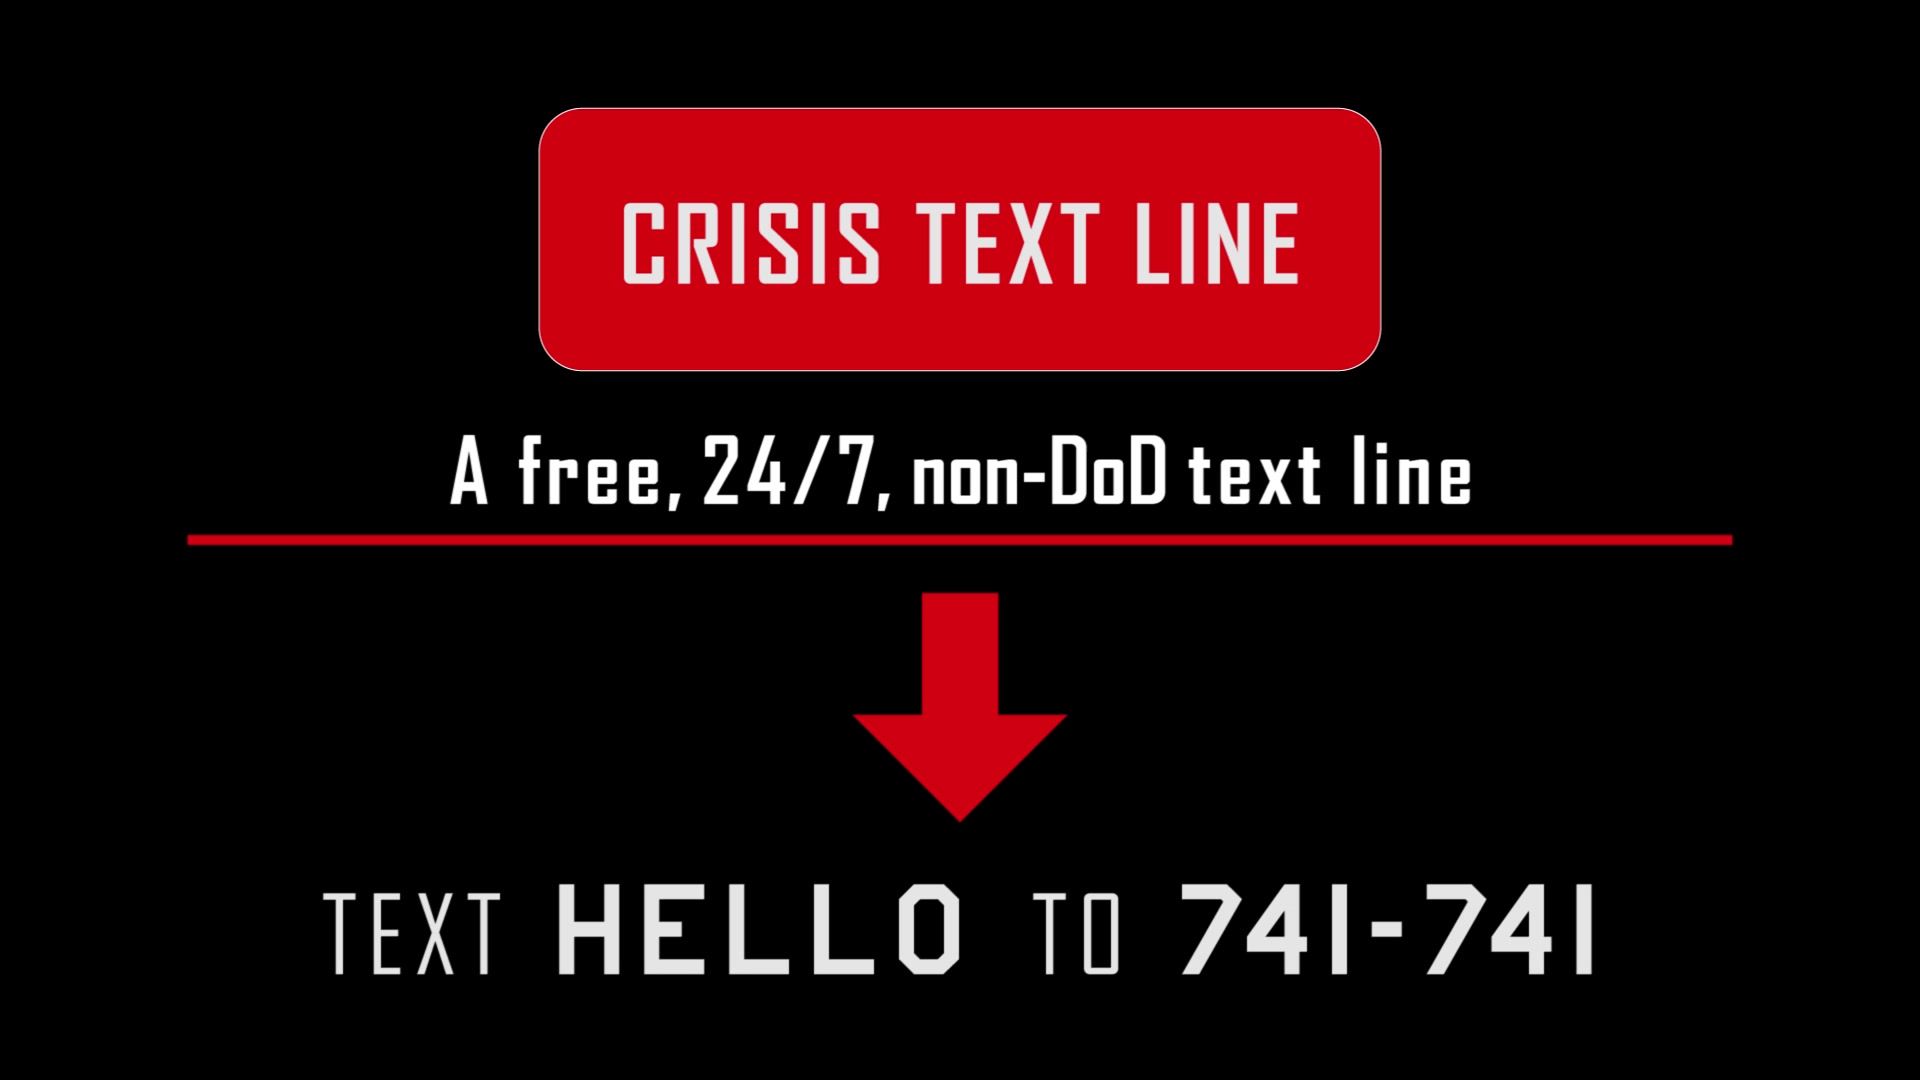 Video  non-Department of Defense emergency text hotline.